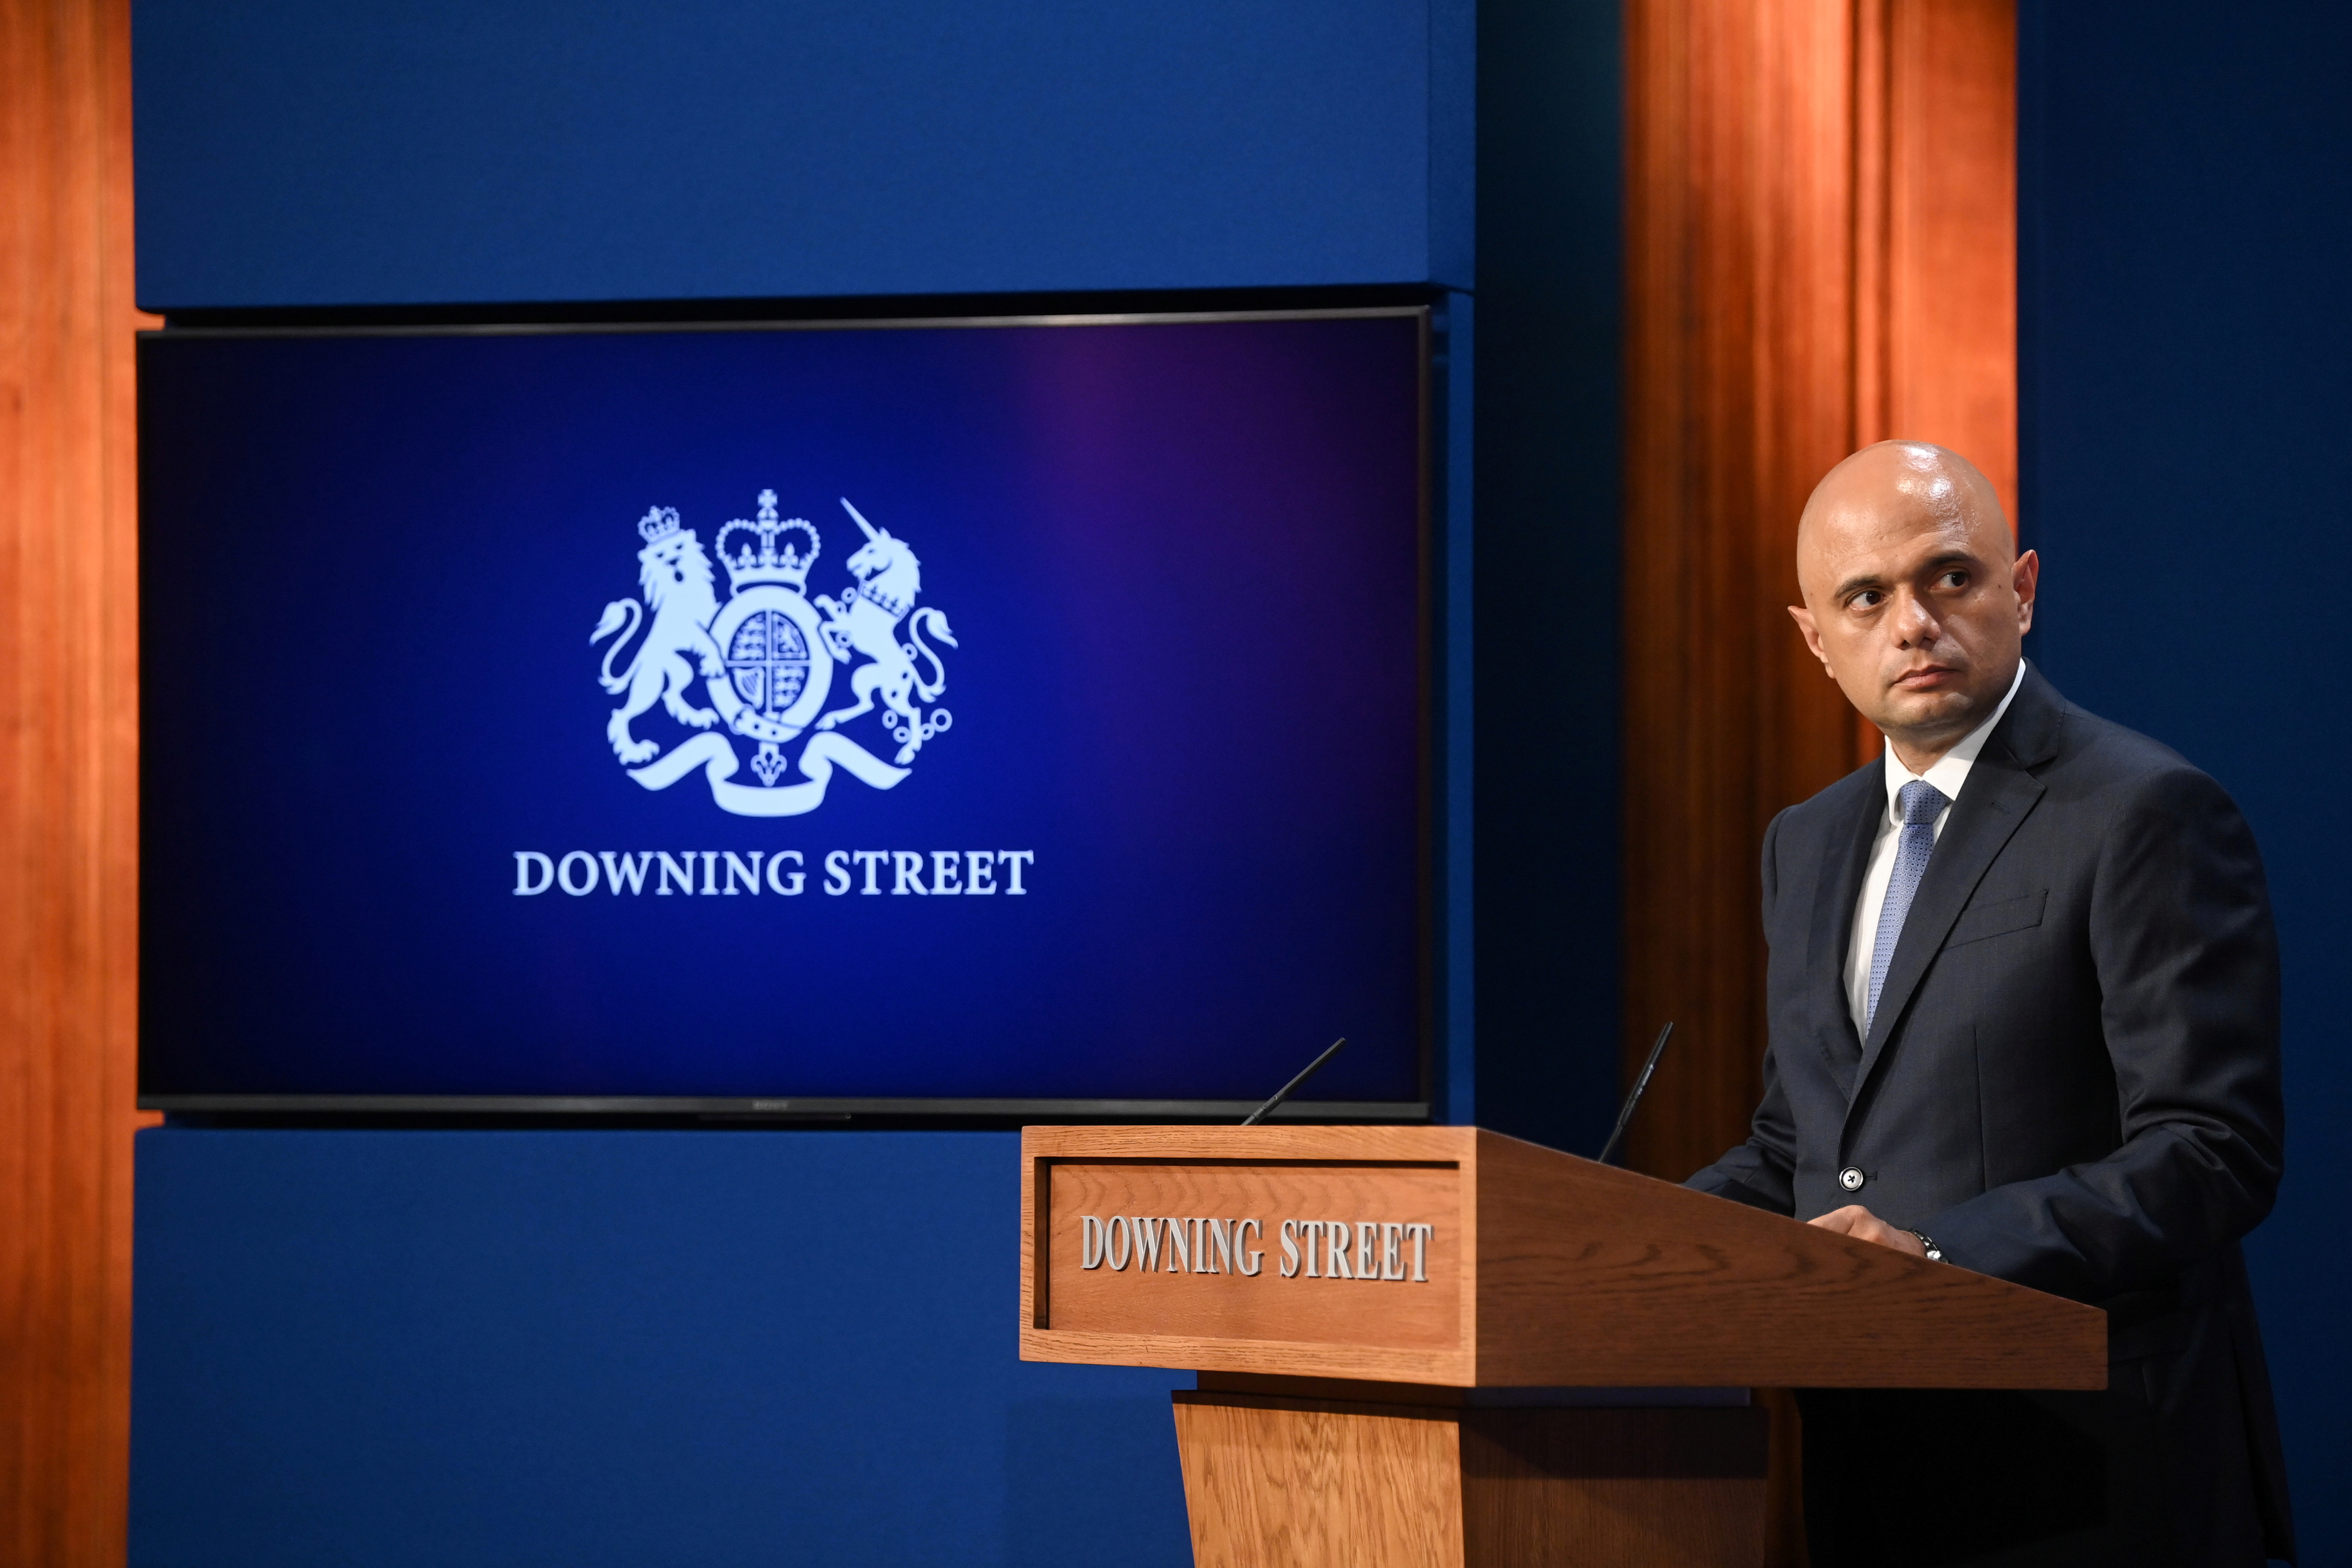 Britain's Health Secretary Sajid Javid looks on during a news conference with Britain's Prime Minister Boris Johnson and Britain's Chancellor of the Exchequer Rishi Sunak, in Downing Street, in London, Britain, September 7, 2021. REUTERS/Toby Melville/Pool/File Photo